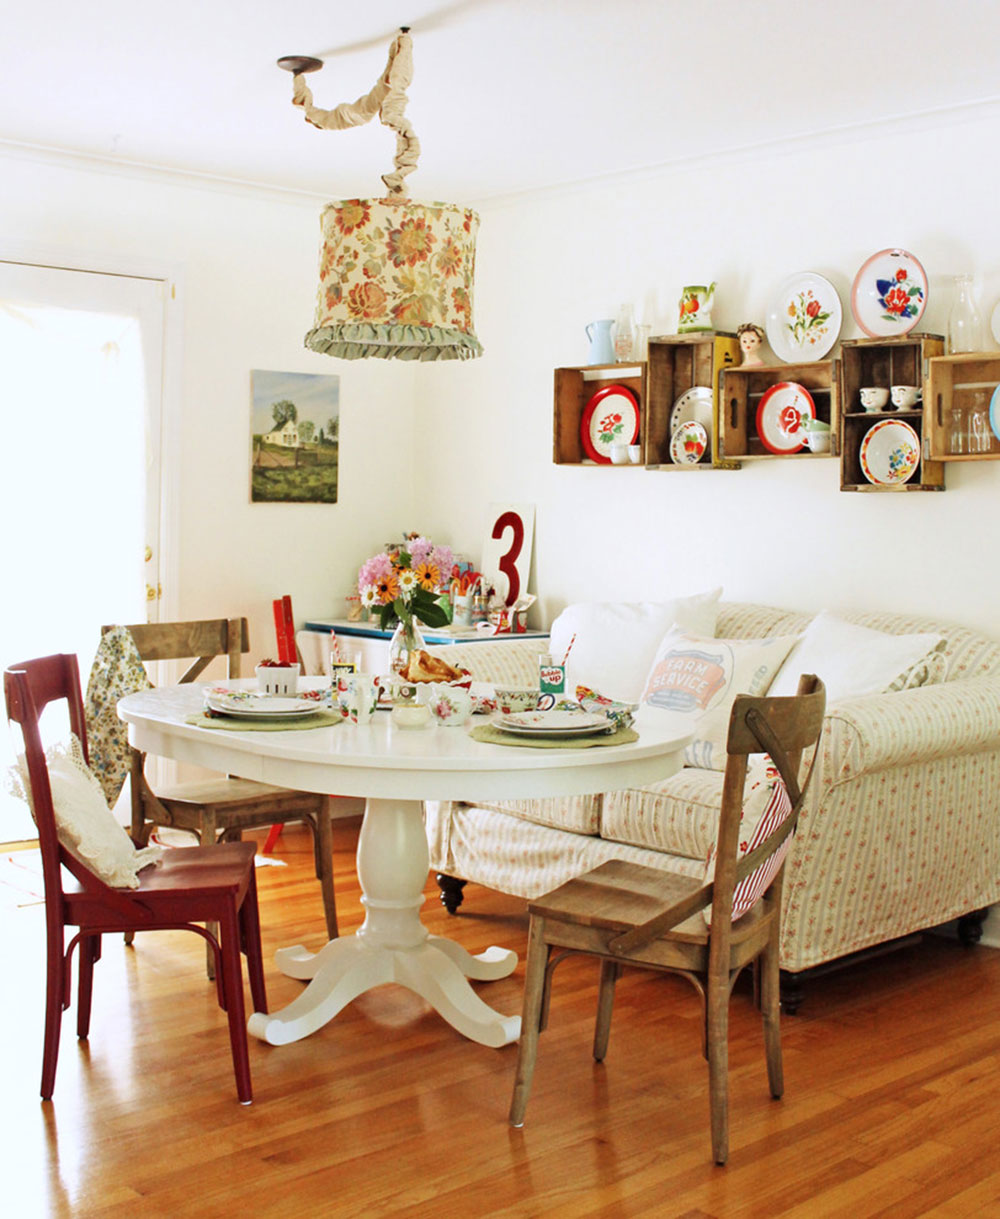 Cottage-Style-Designs-Can-Look-Great6 Cottage-Style Designs kan se bra ut